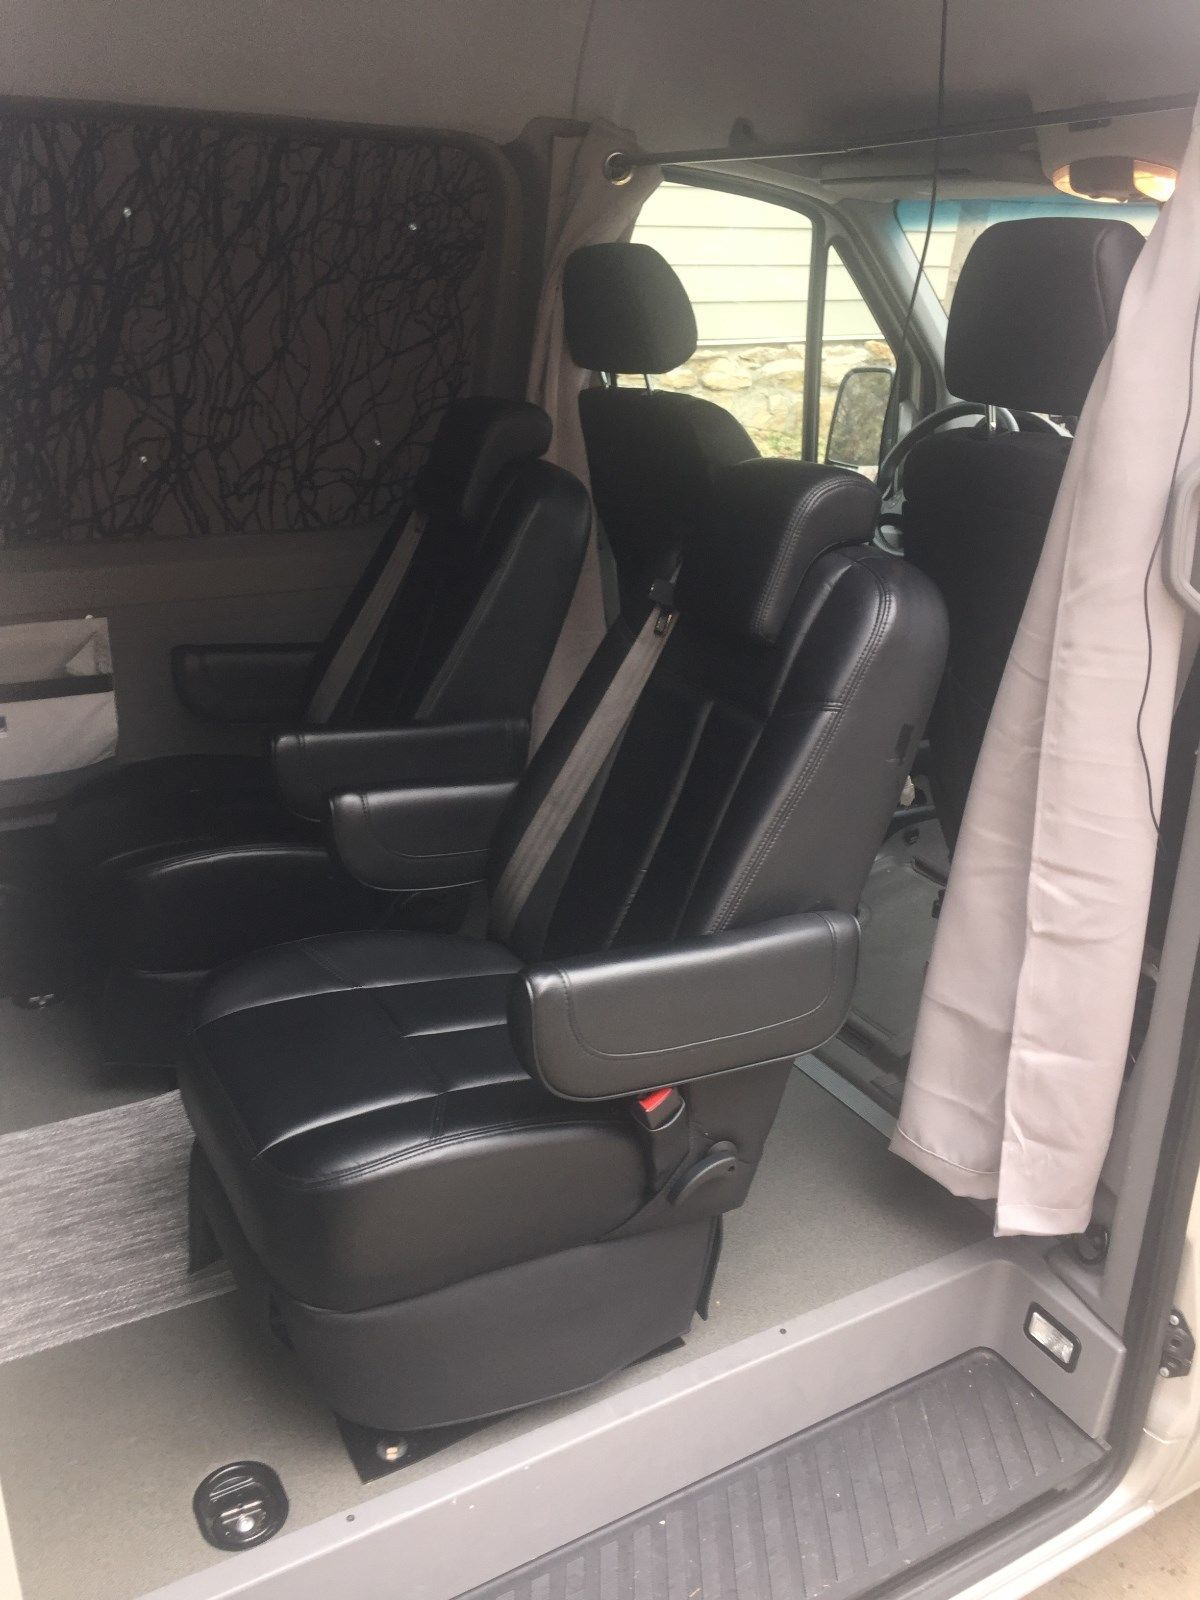 swivel chair mercedes sprinter fold up wheelchair amazing 2015 benz van